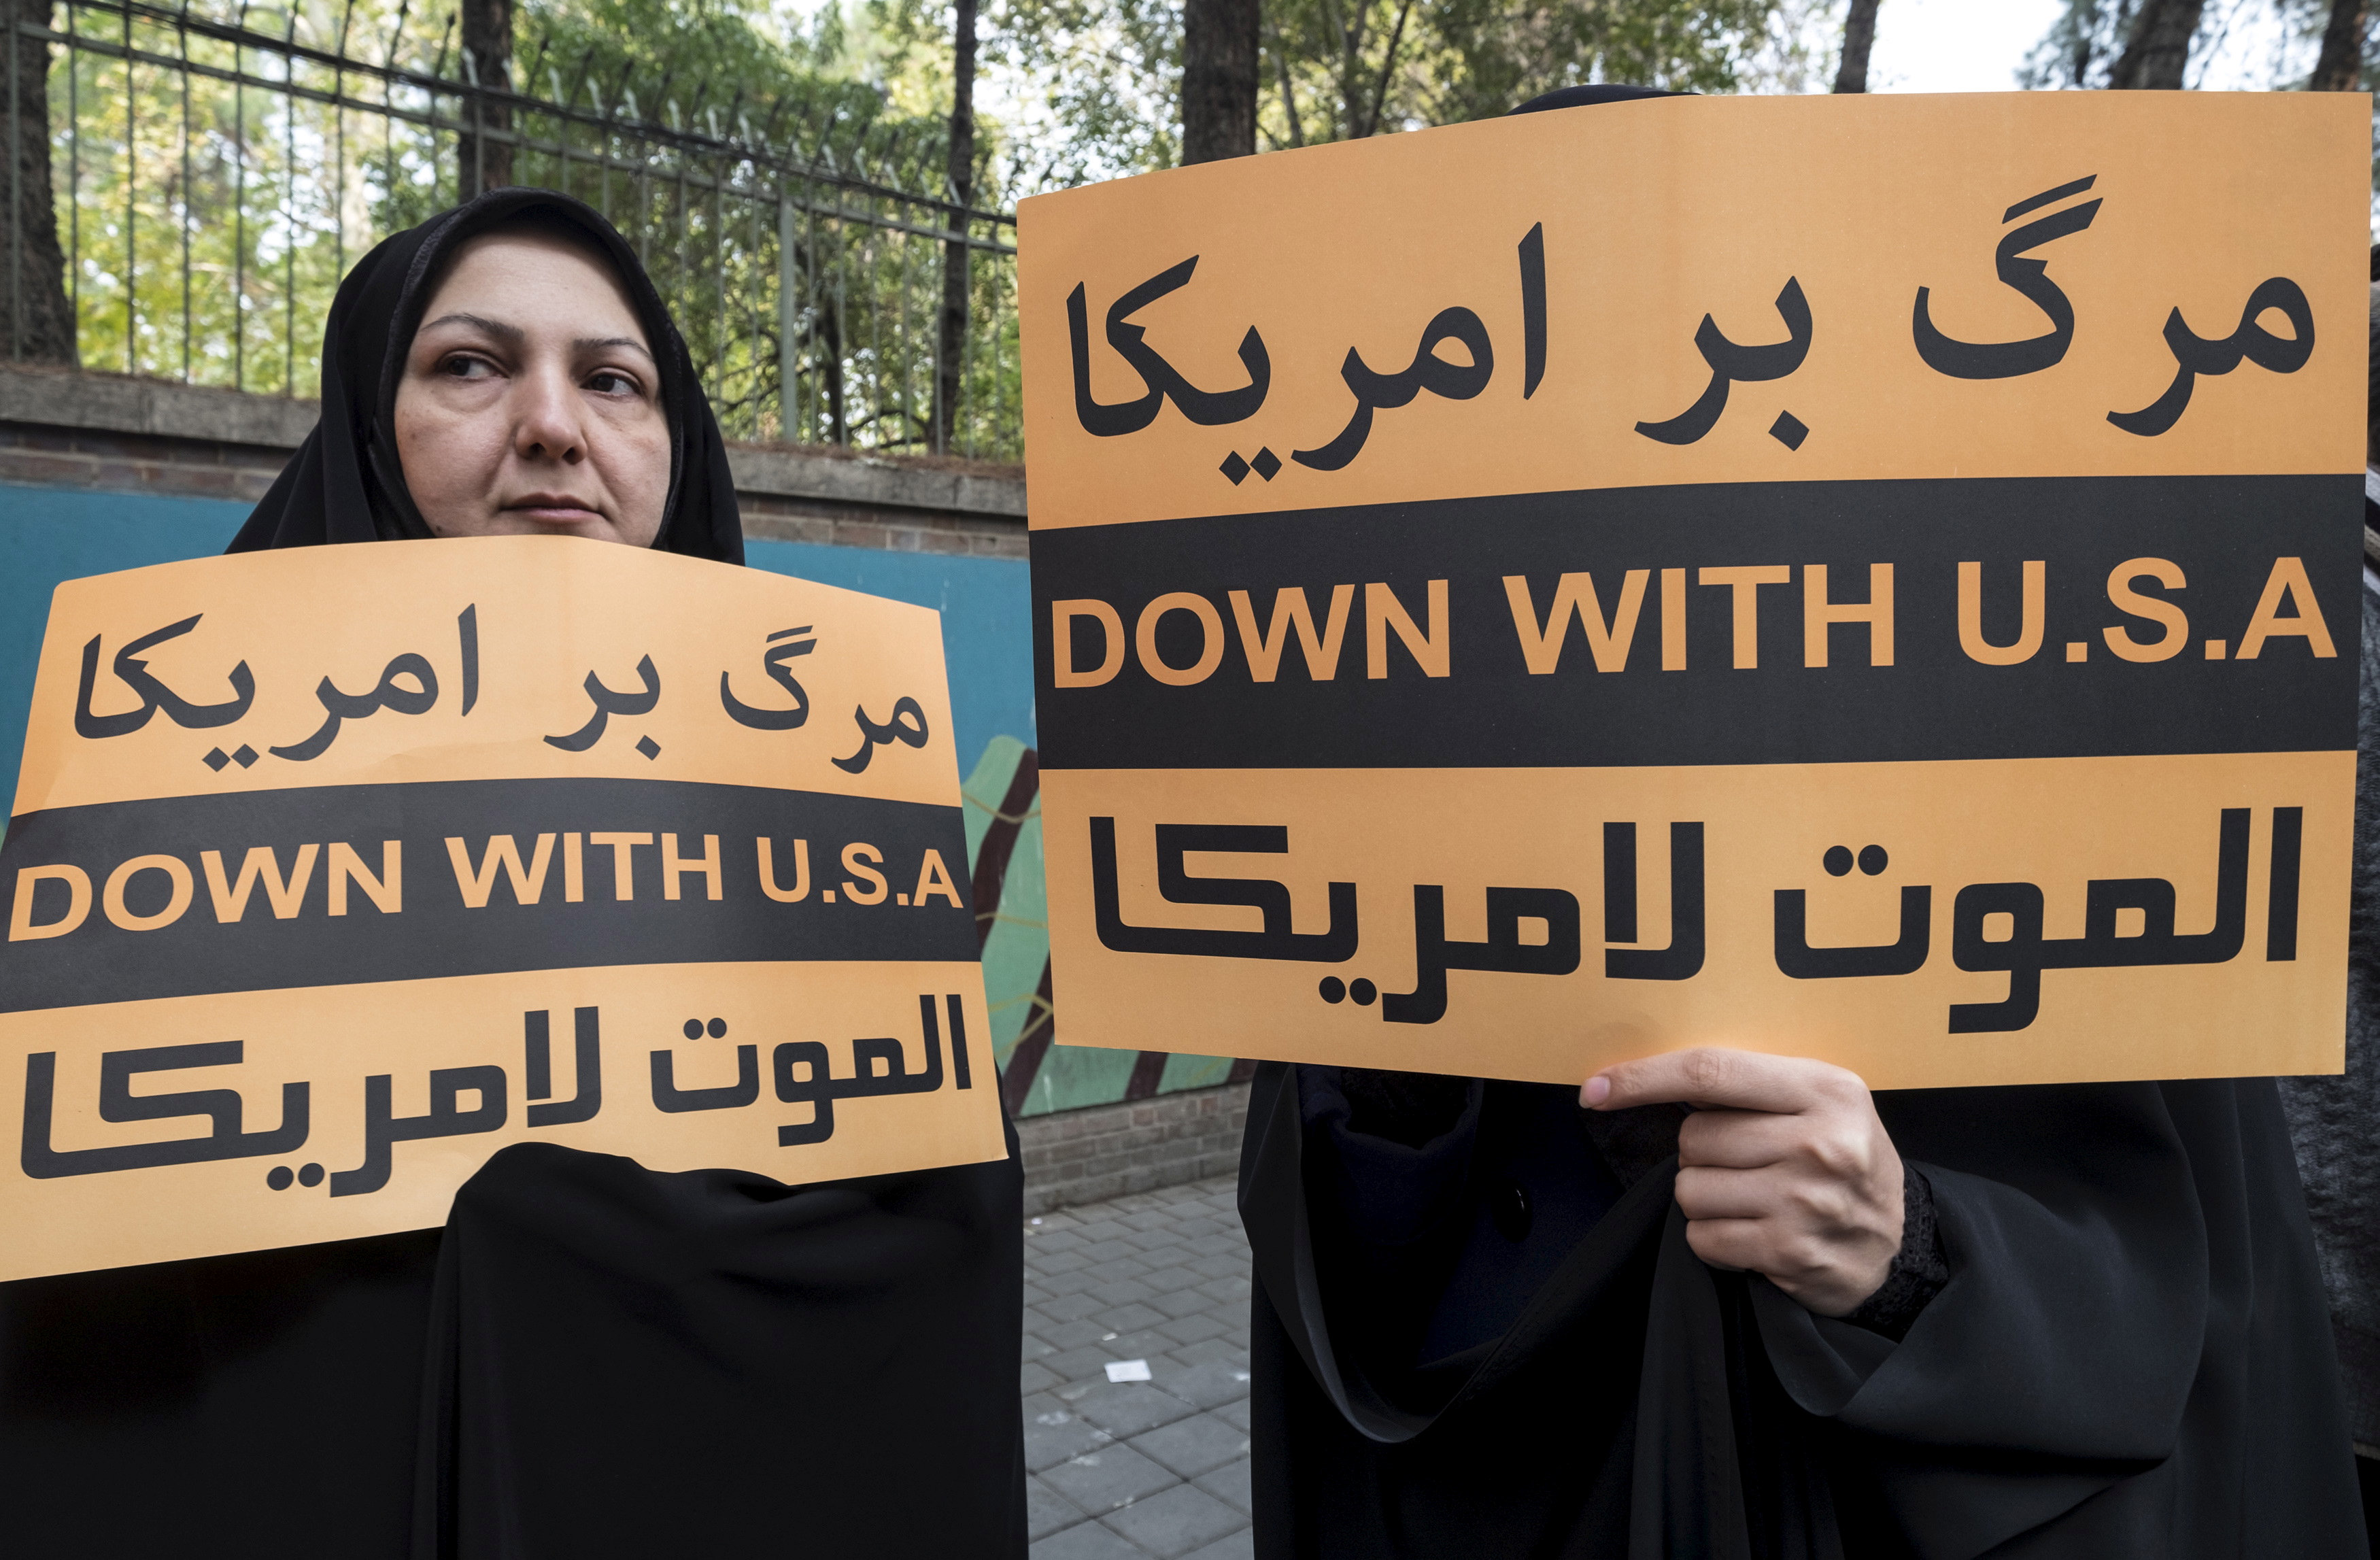 FILE PHOTO: Women hold anti-U.S. banners during a demonstration outside the former U.S. embassy in Tehran November 4, 2015. REUTERS/Raheb Homavandi/TIMA/File Photo